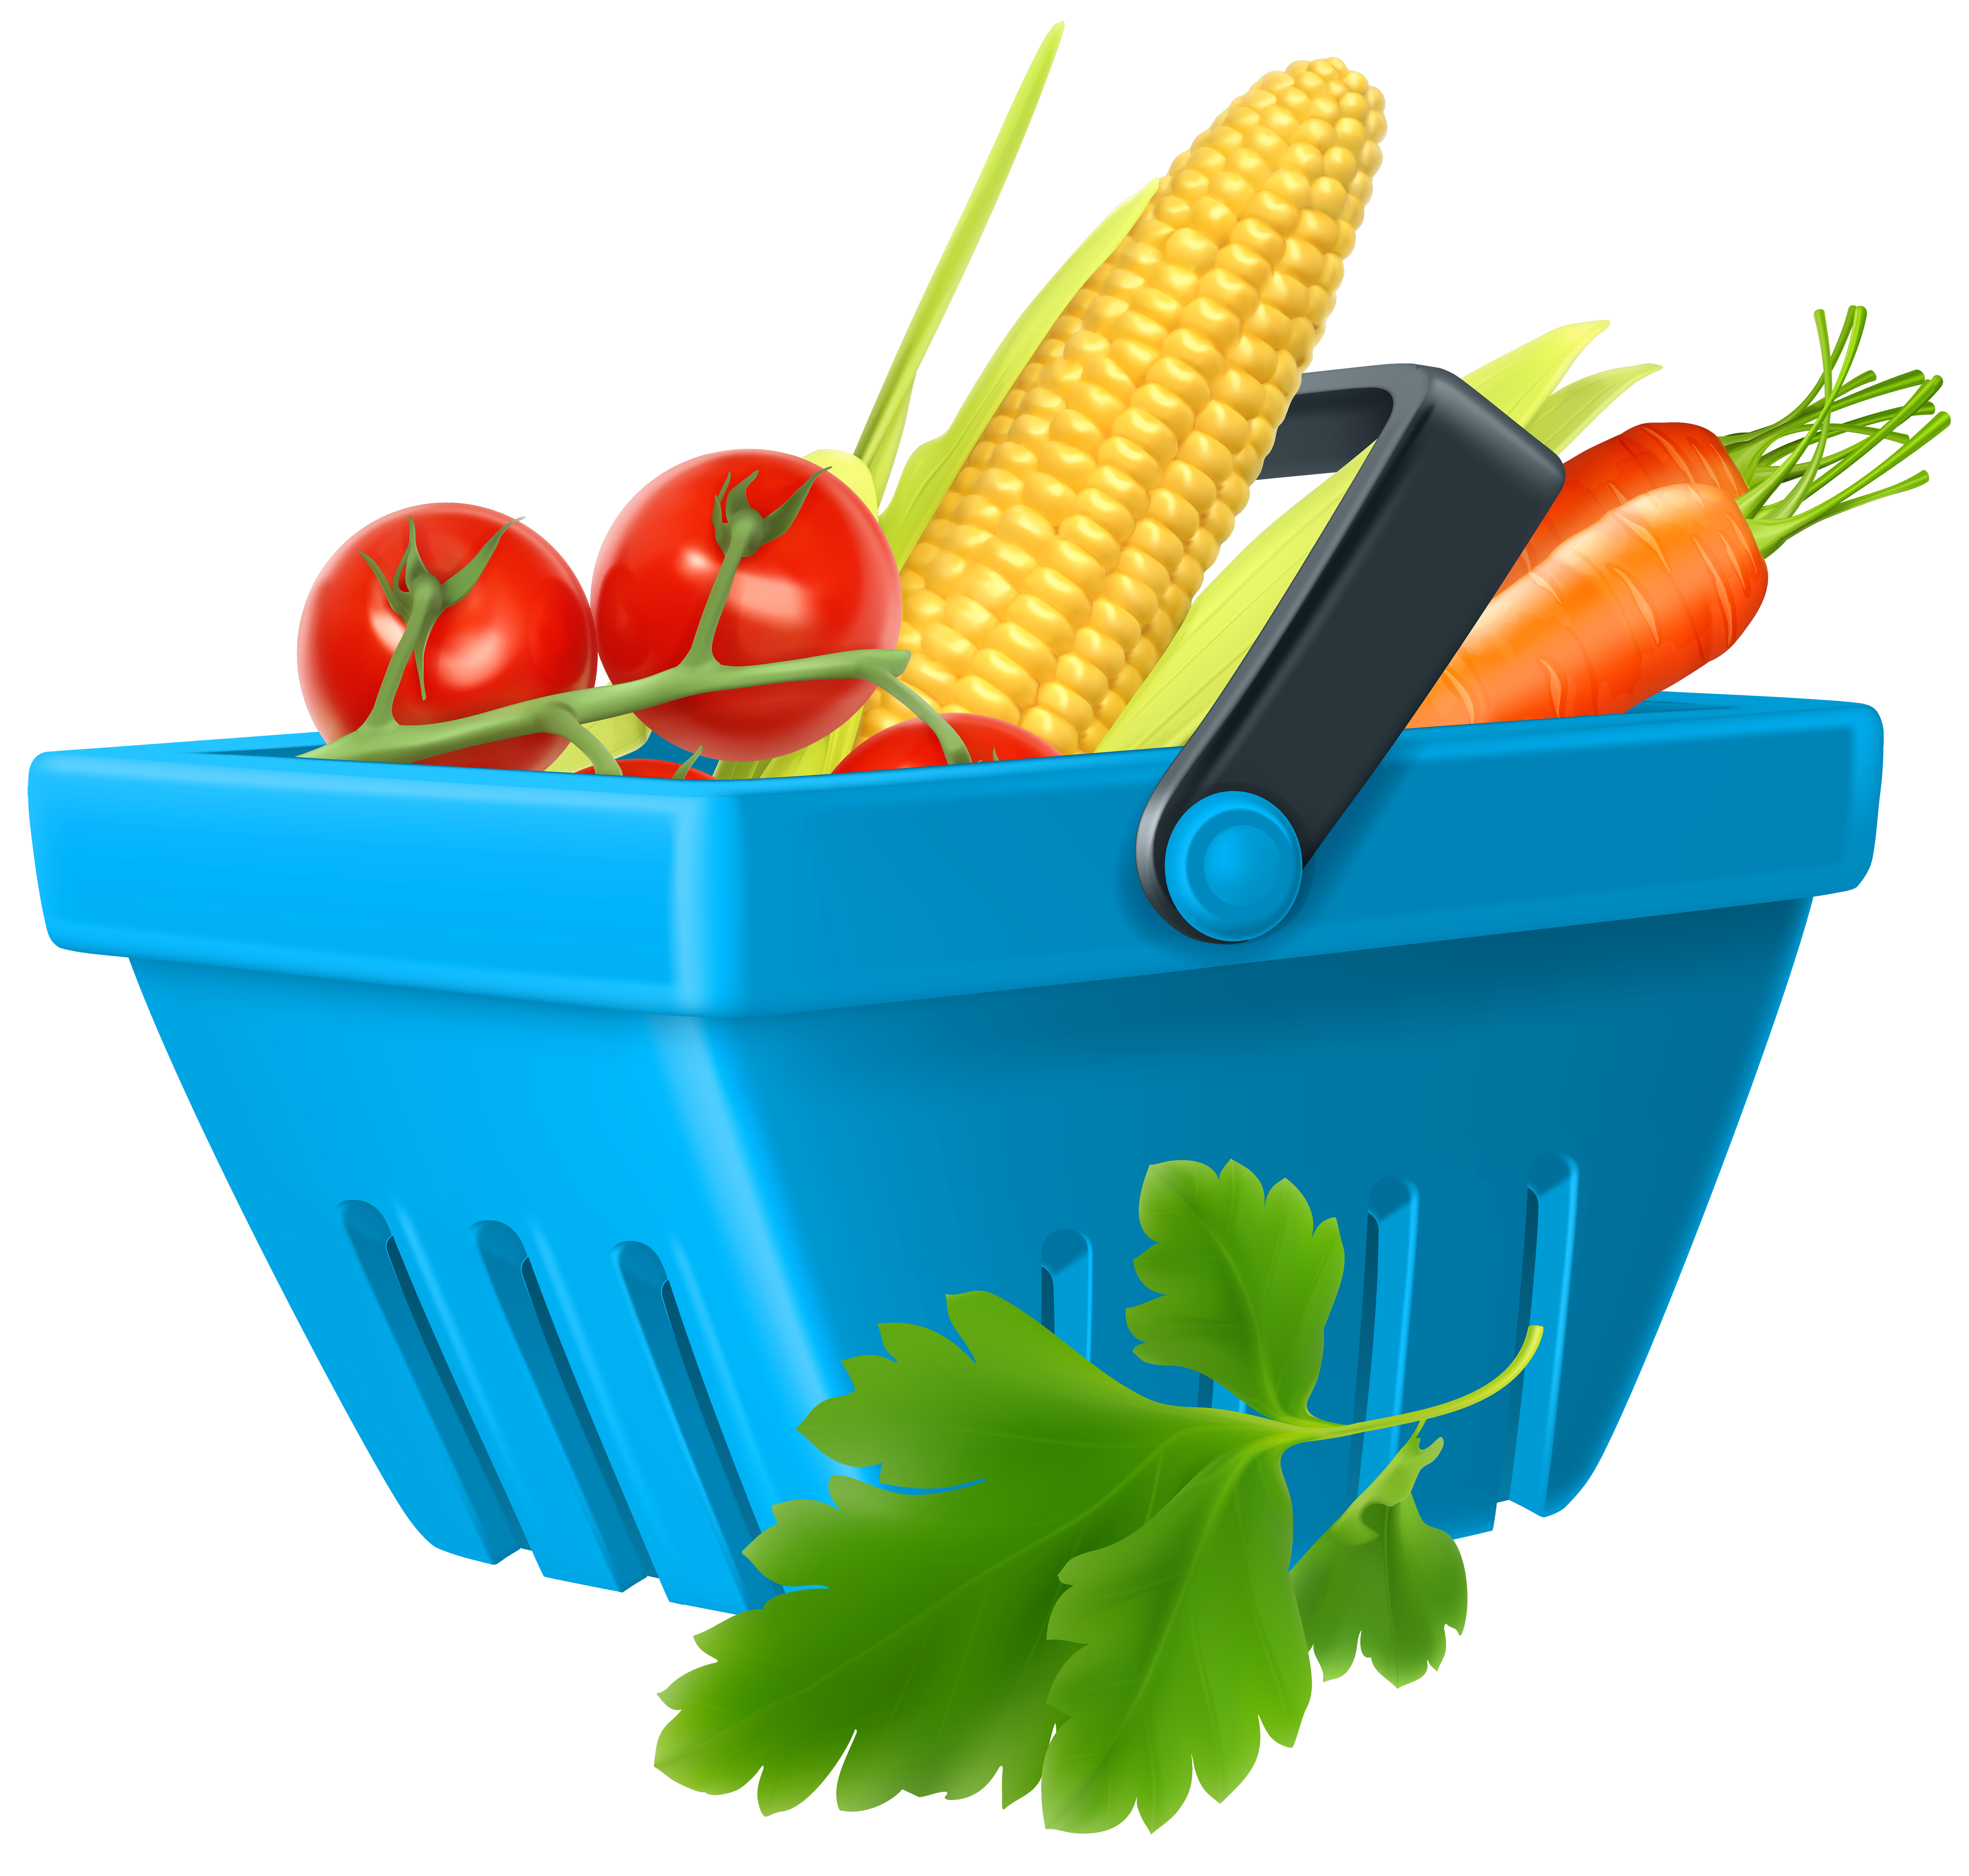 Meat clipart basket. With vegetables png best